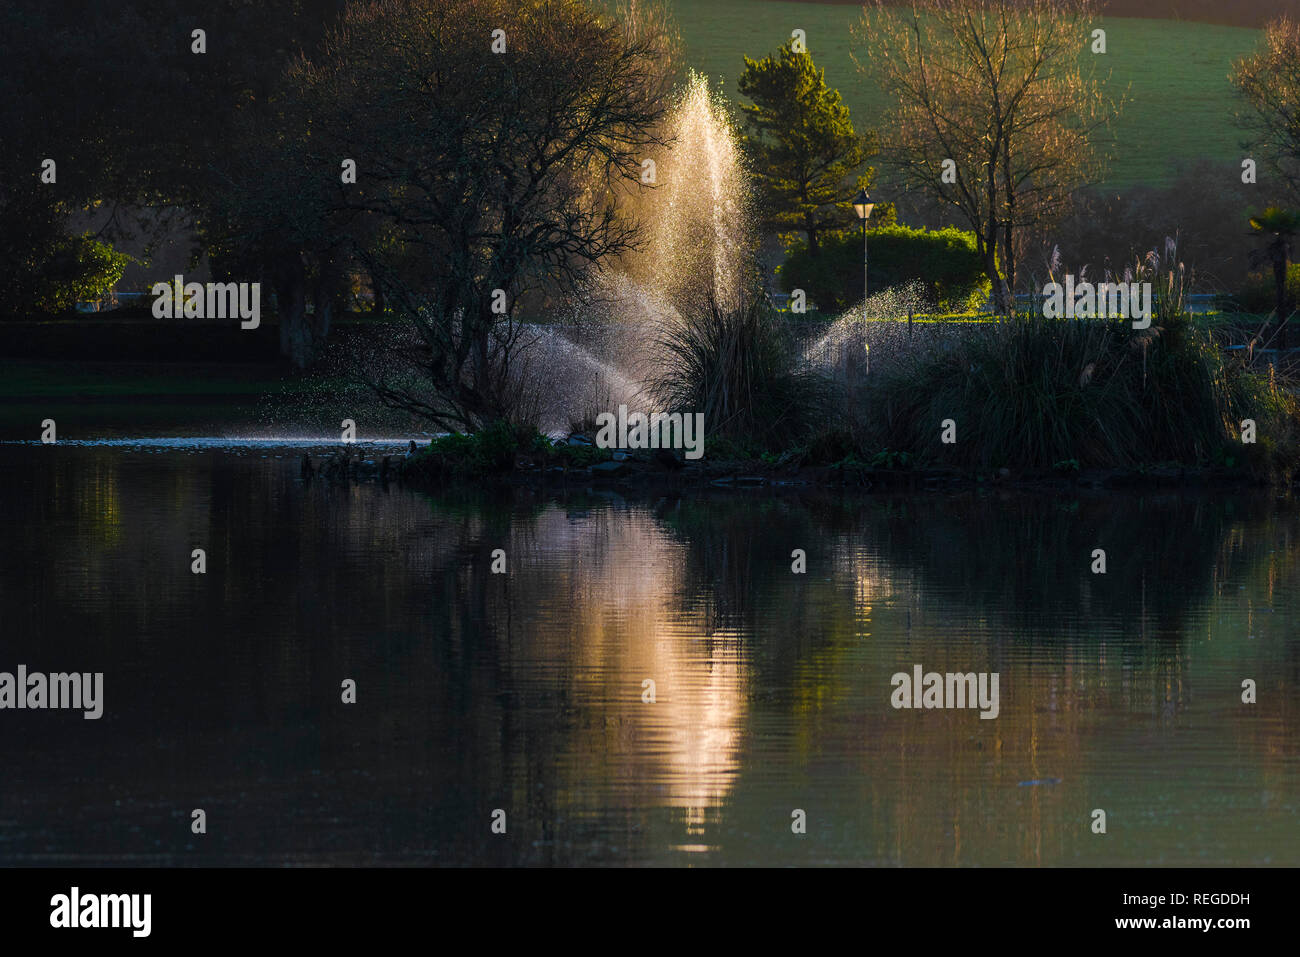 Evening light over the fountain in Trenance Boating lake in Trenance Park in Newquay Cornwall. - Stock Image